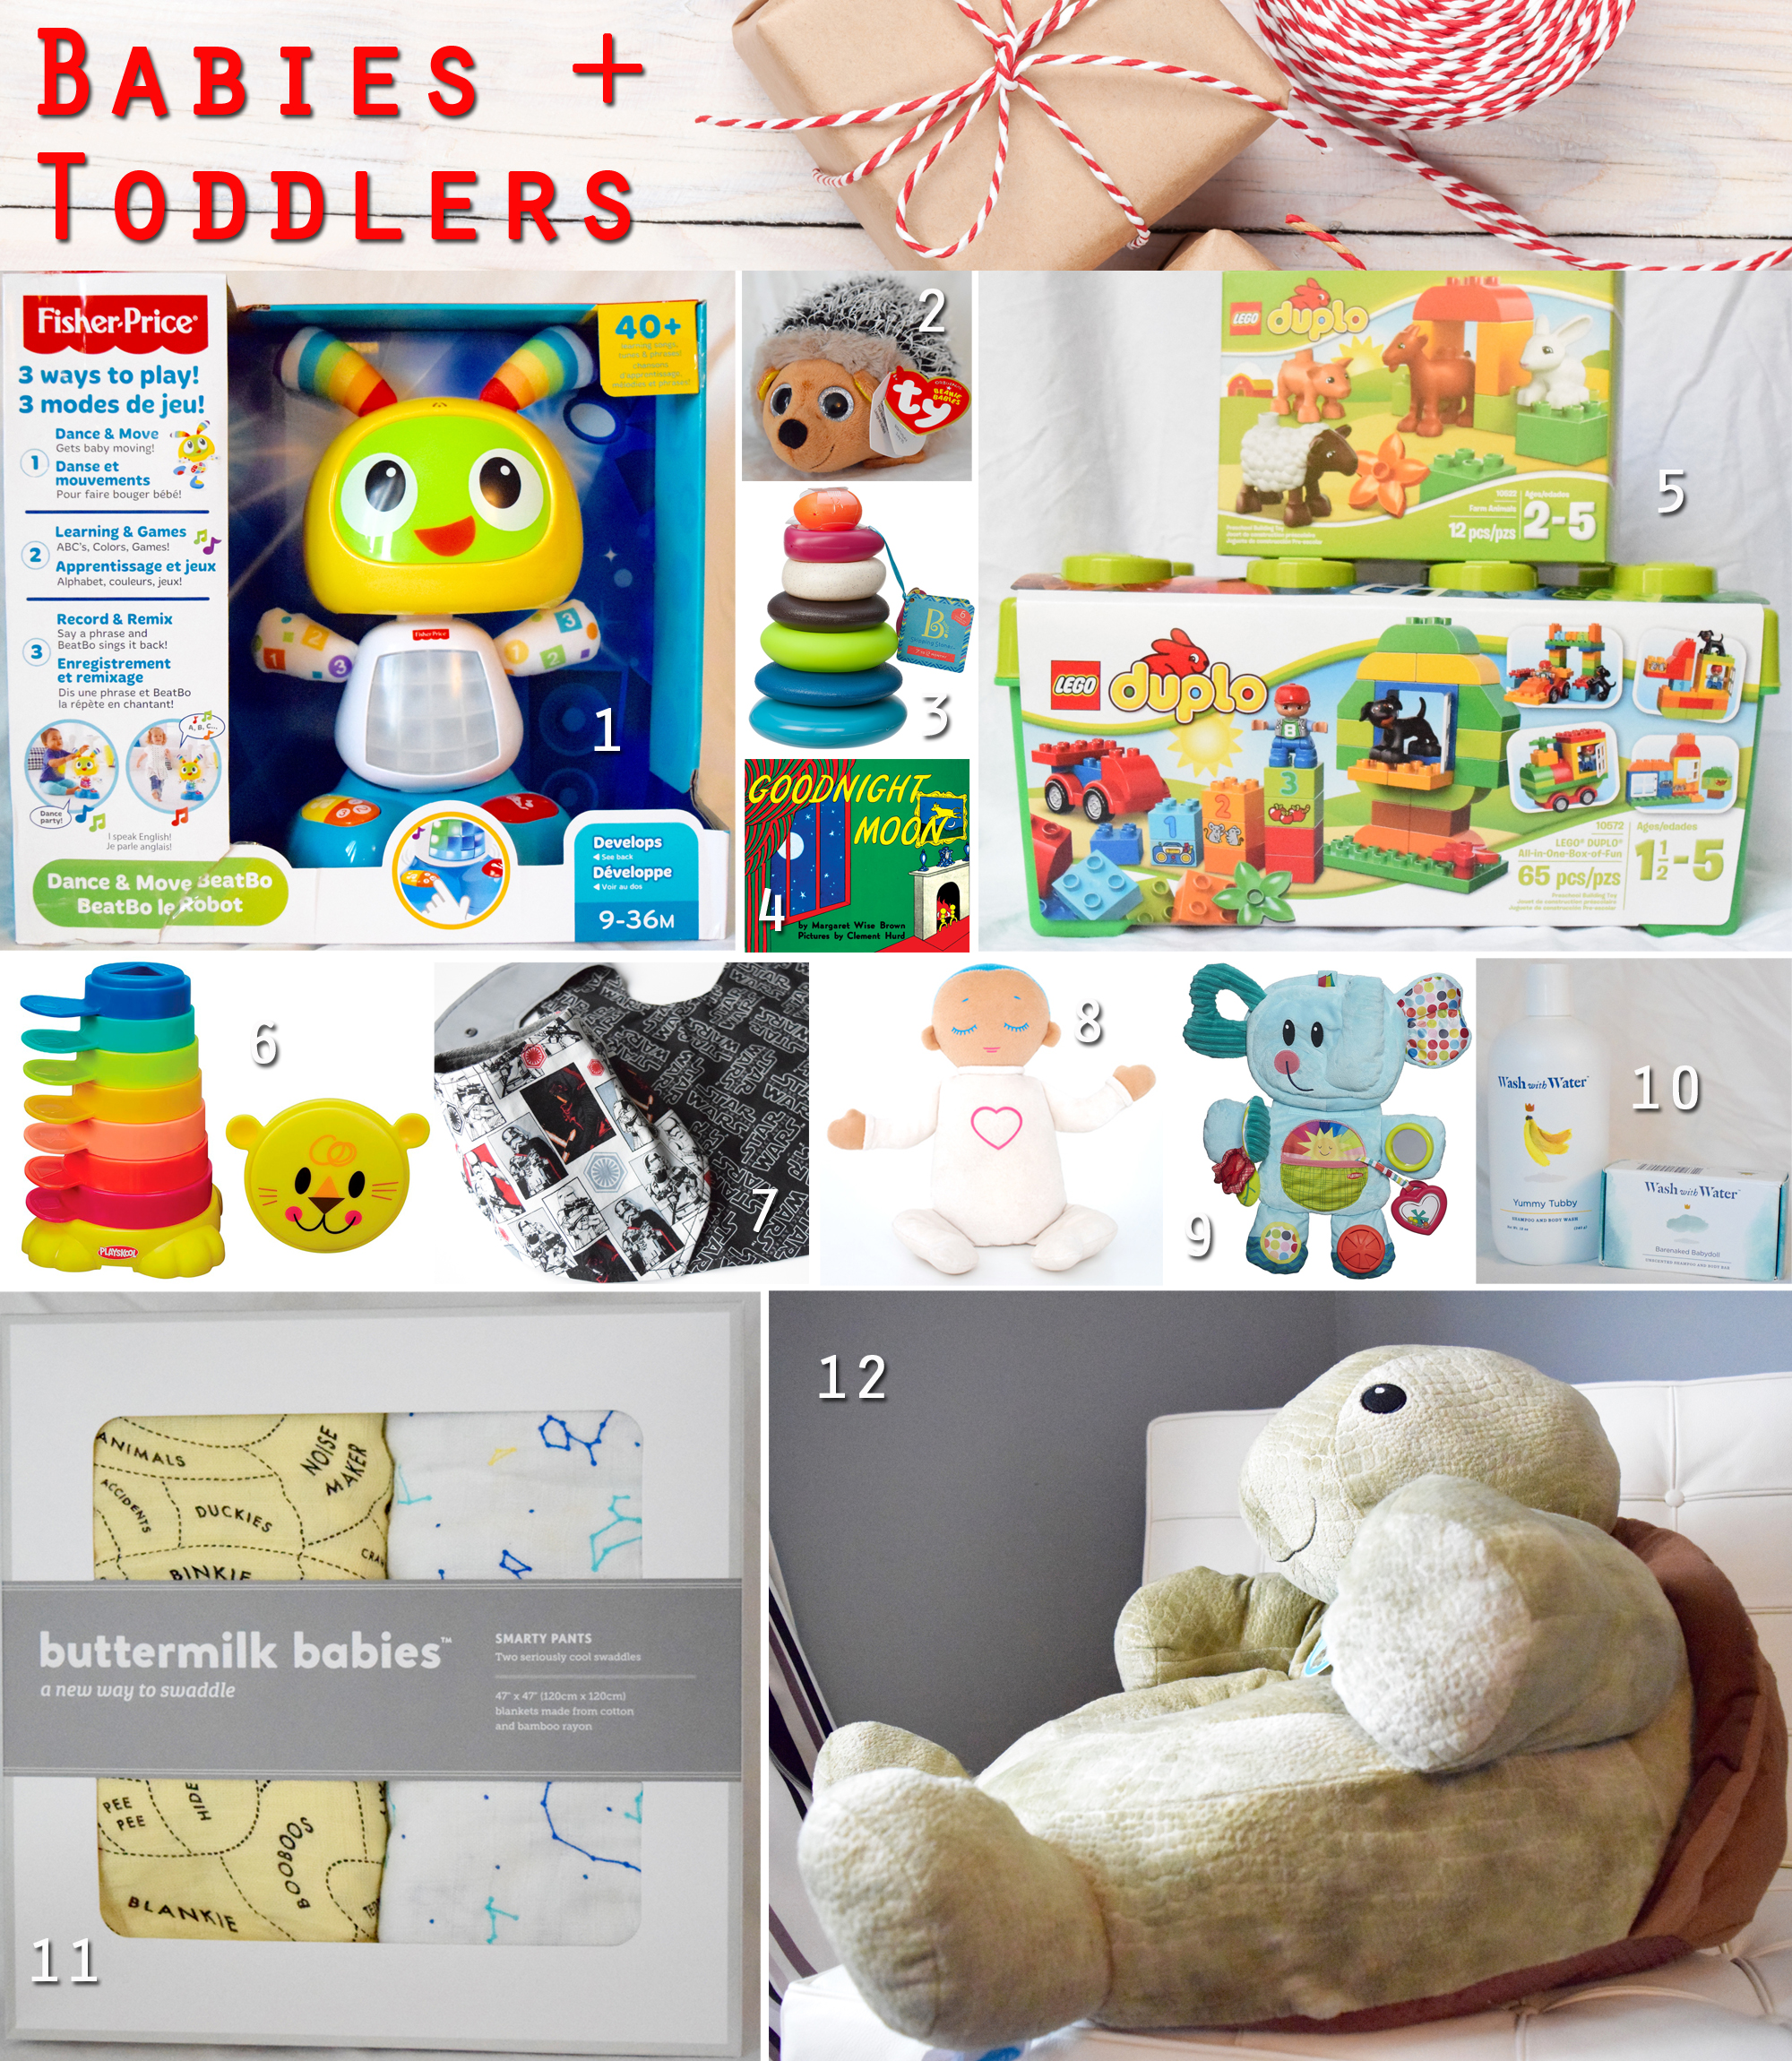 2015 gift guide - babies and toddlers gifts collage